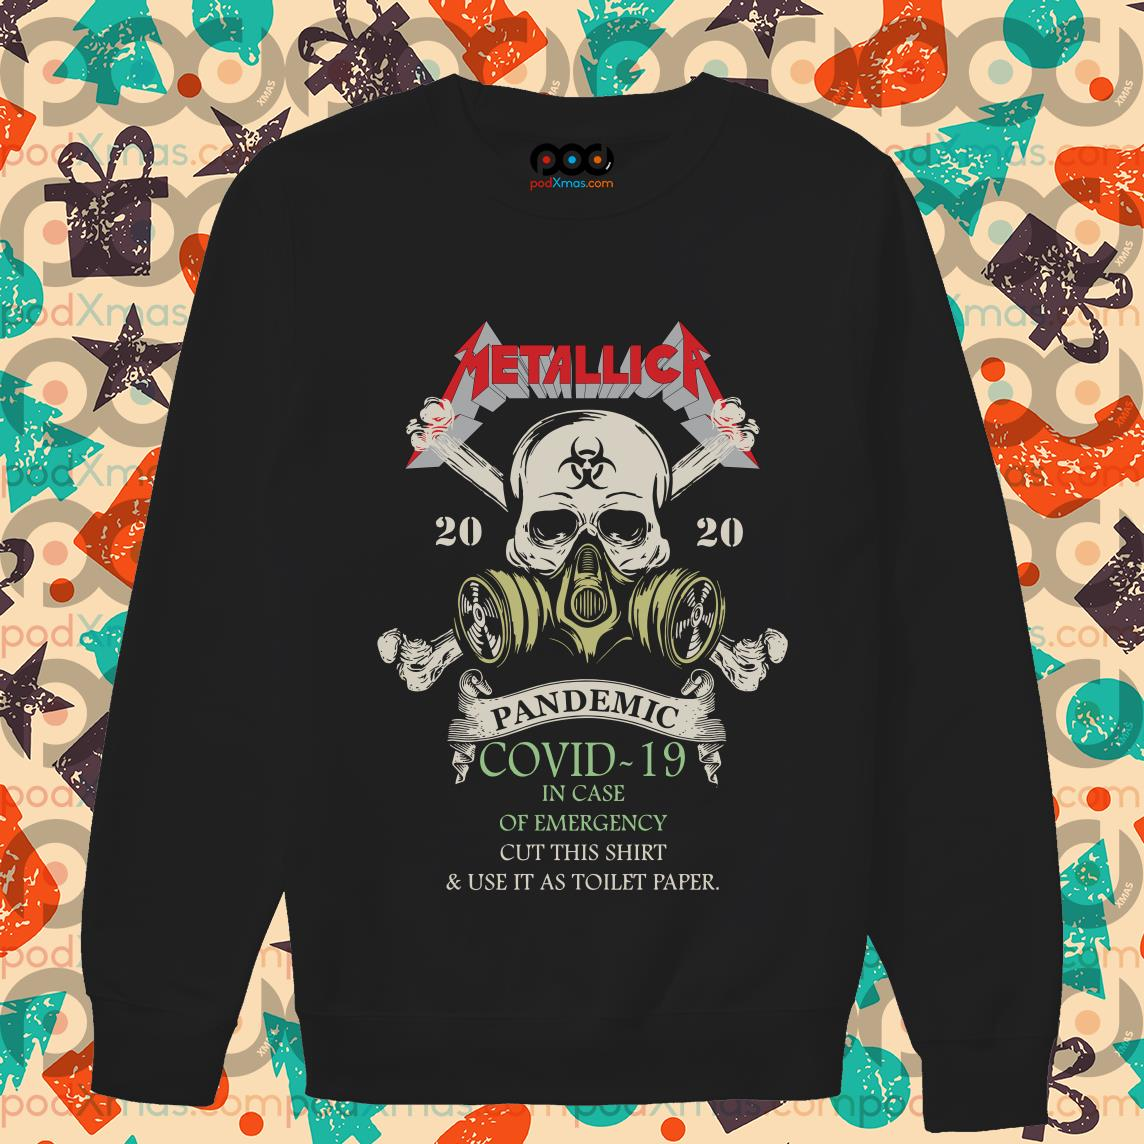 Metallica 2020 Pandemic Covid-19 in case of emergency sweater